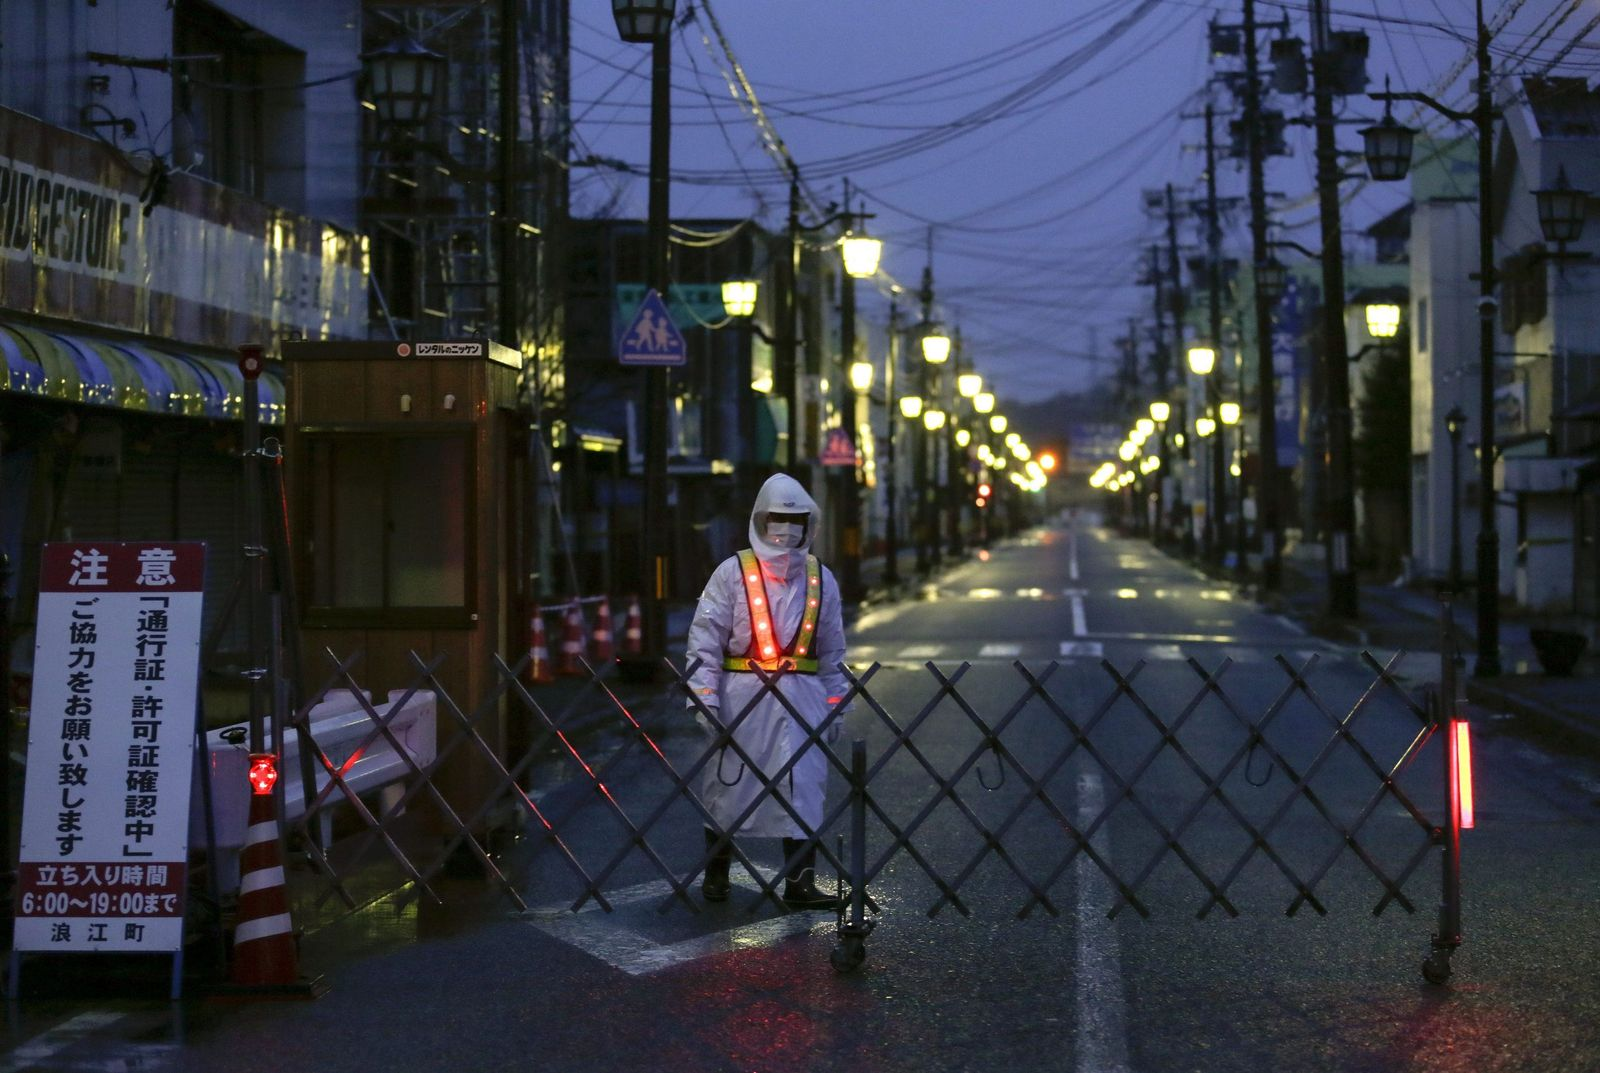 Fifth anniversary of 2011 earthquake and tsunami in Japan